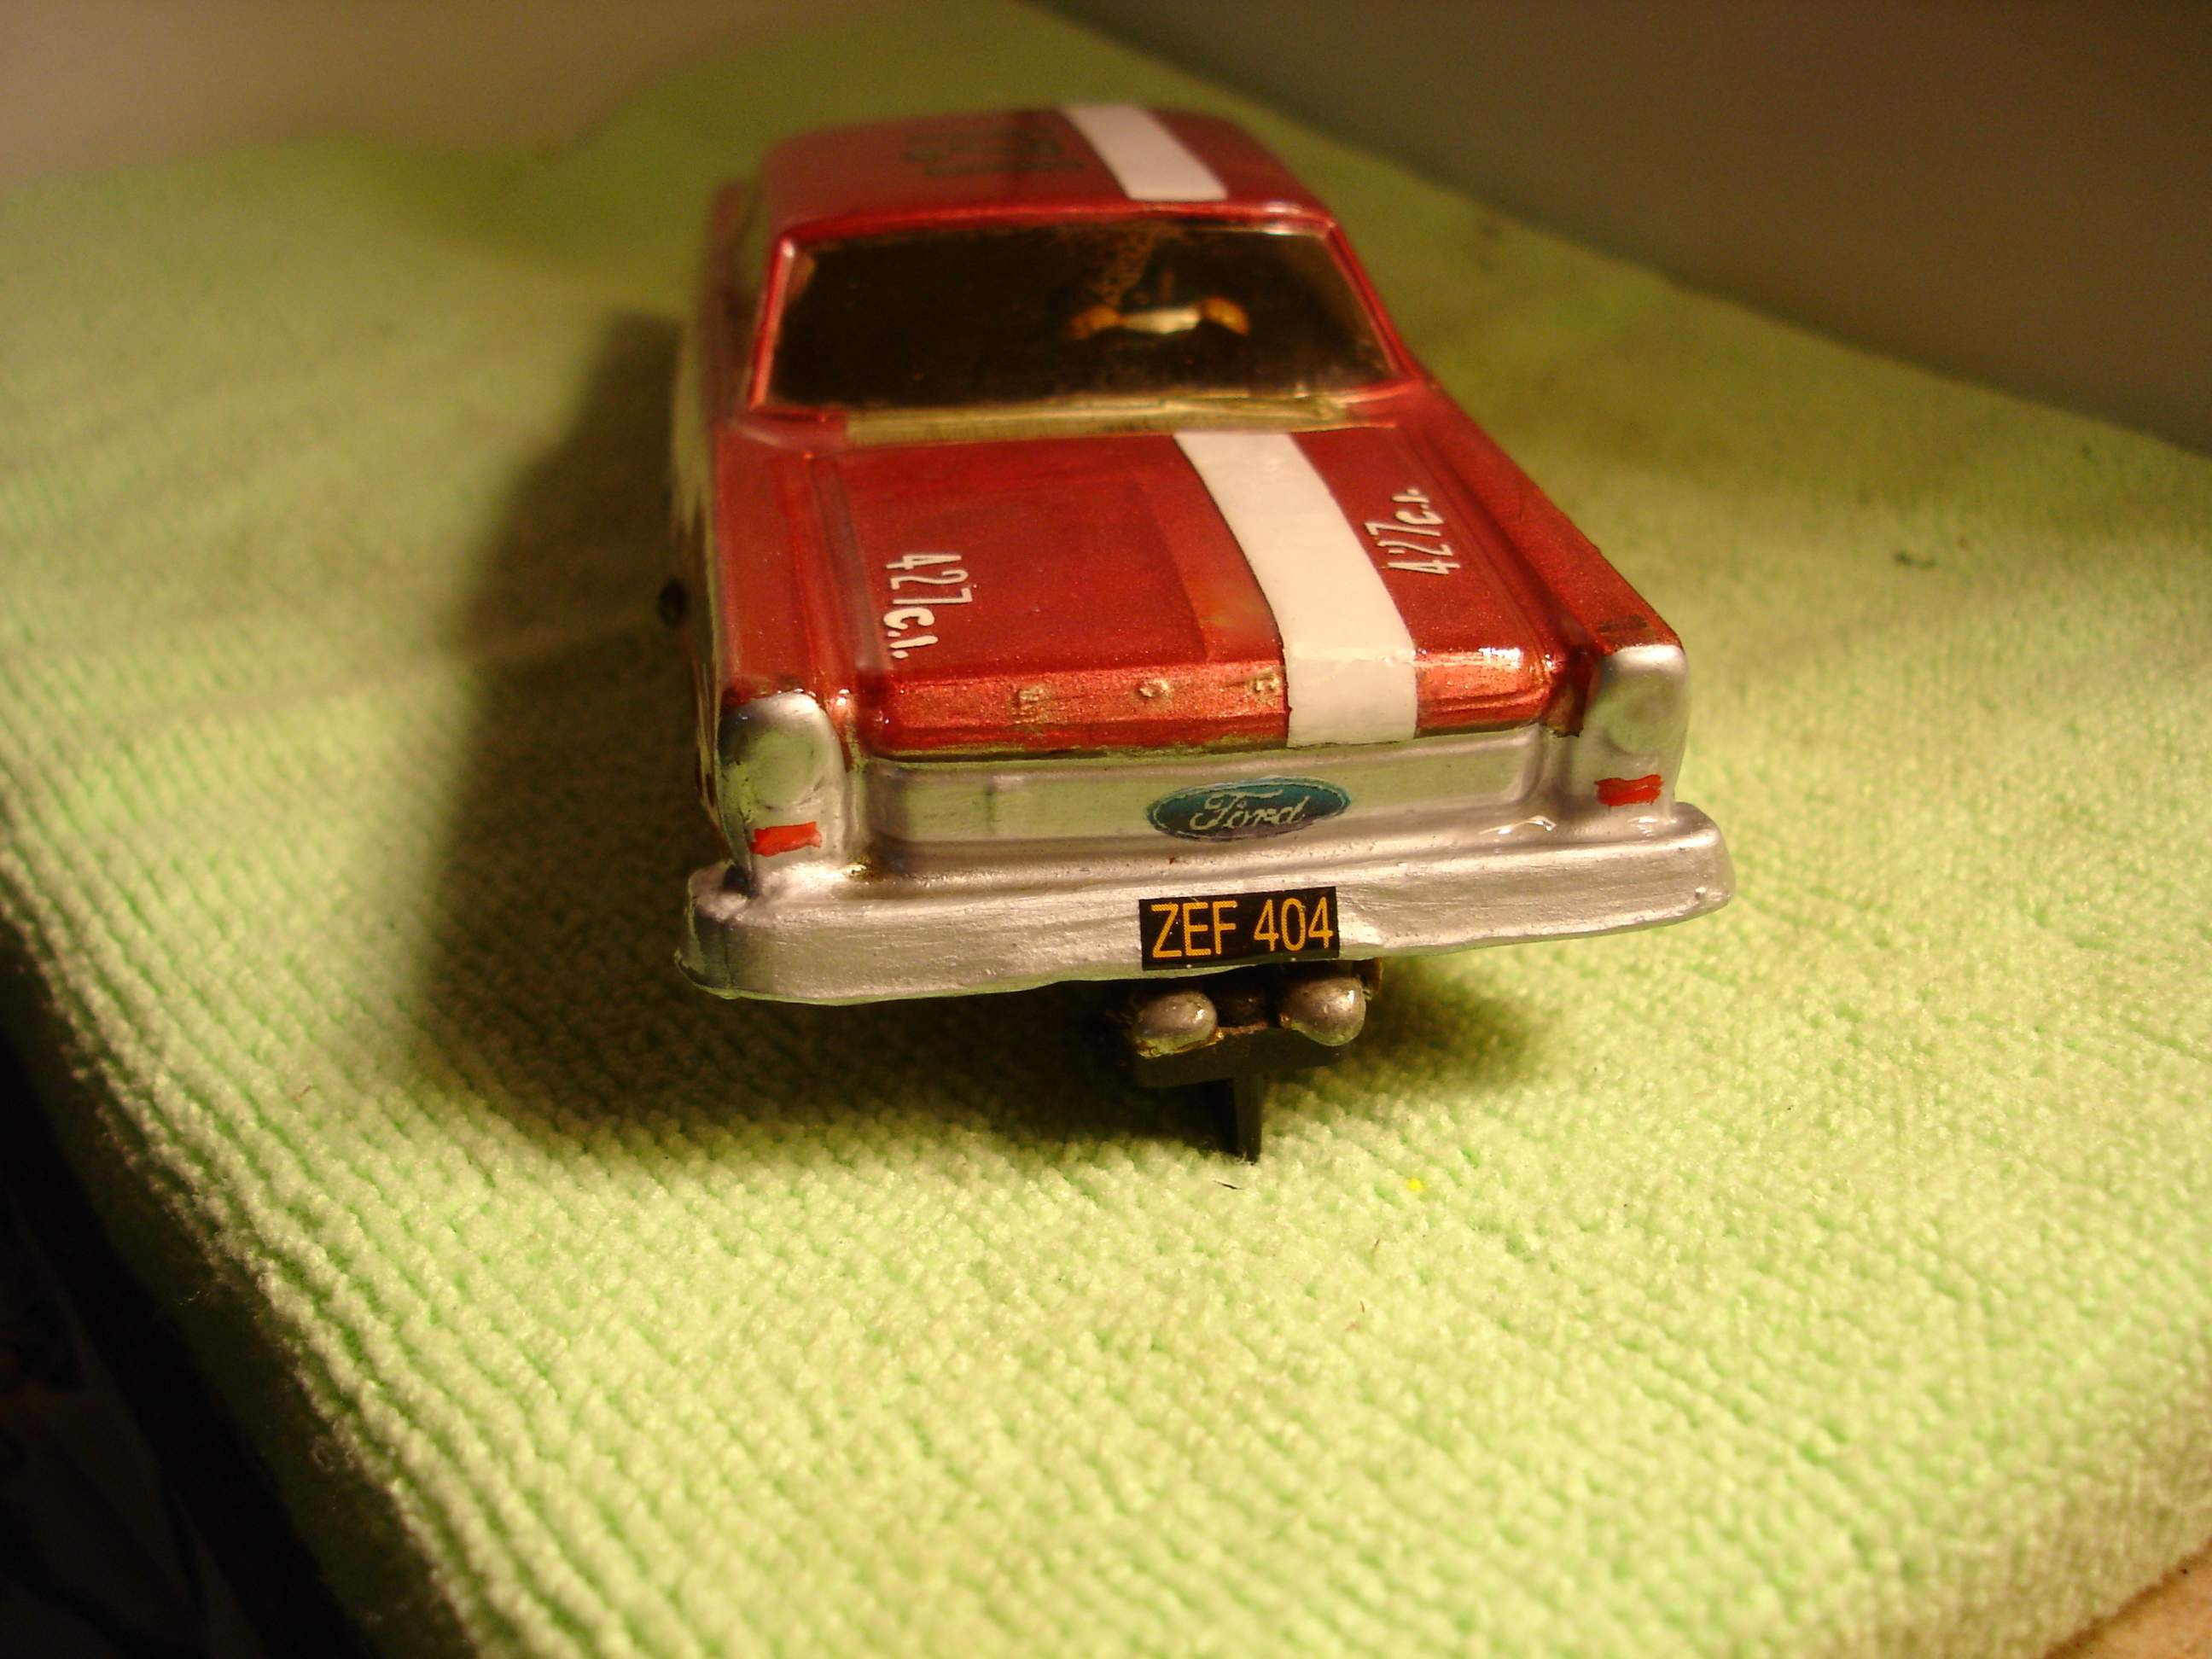 * SOLD * Vintage 1962 Ford Galaxy Slot Car 1/32 Scale